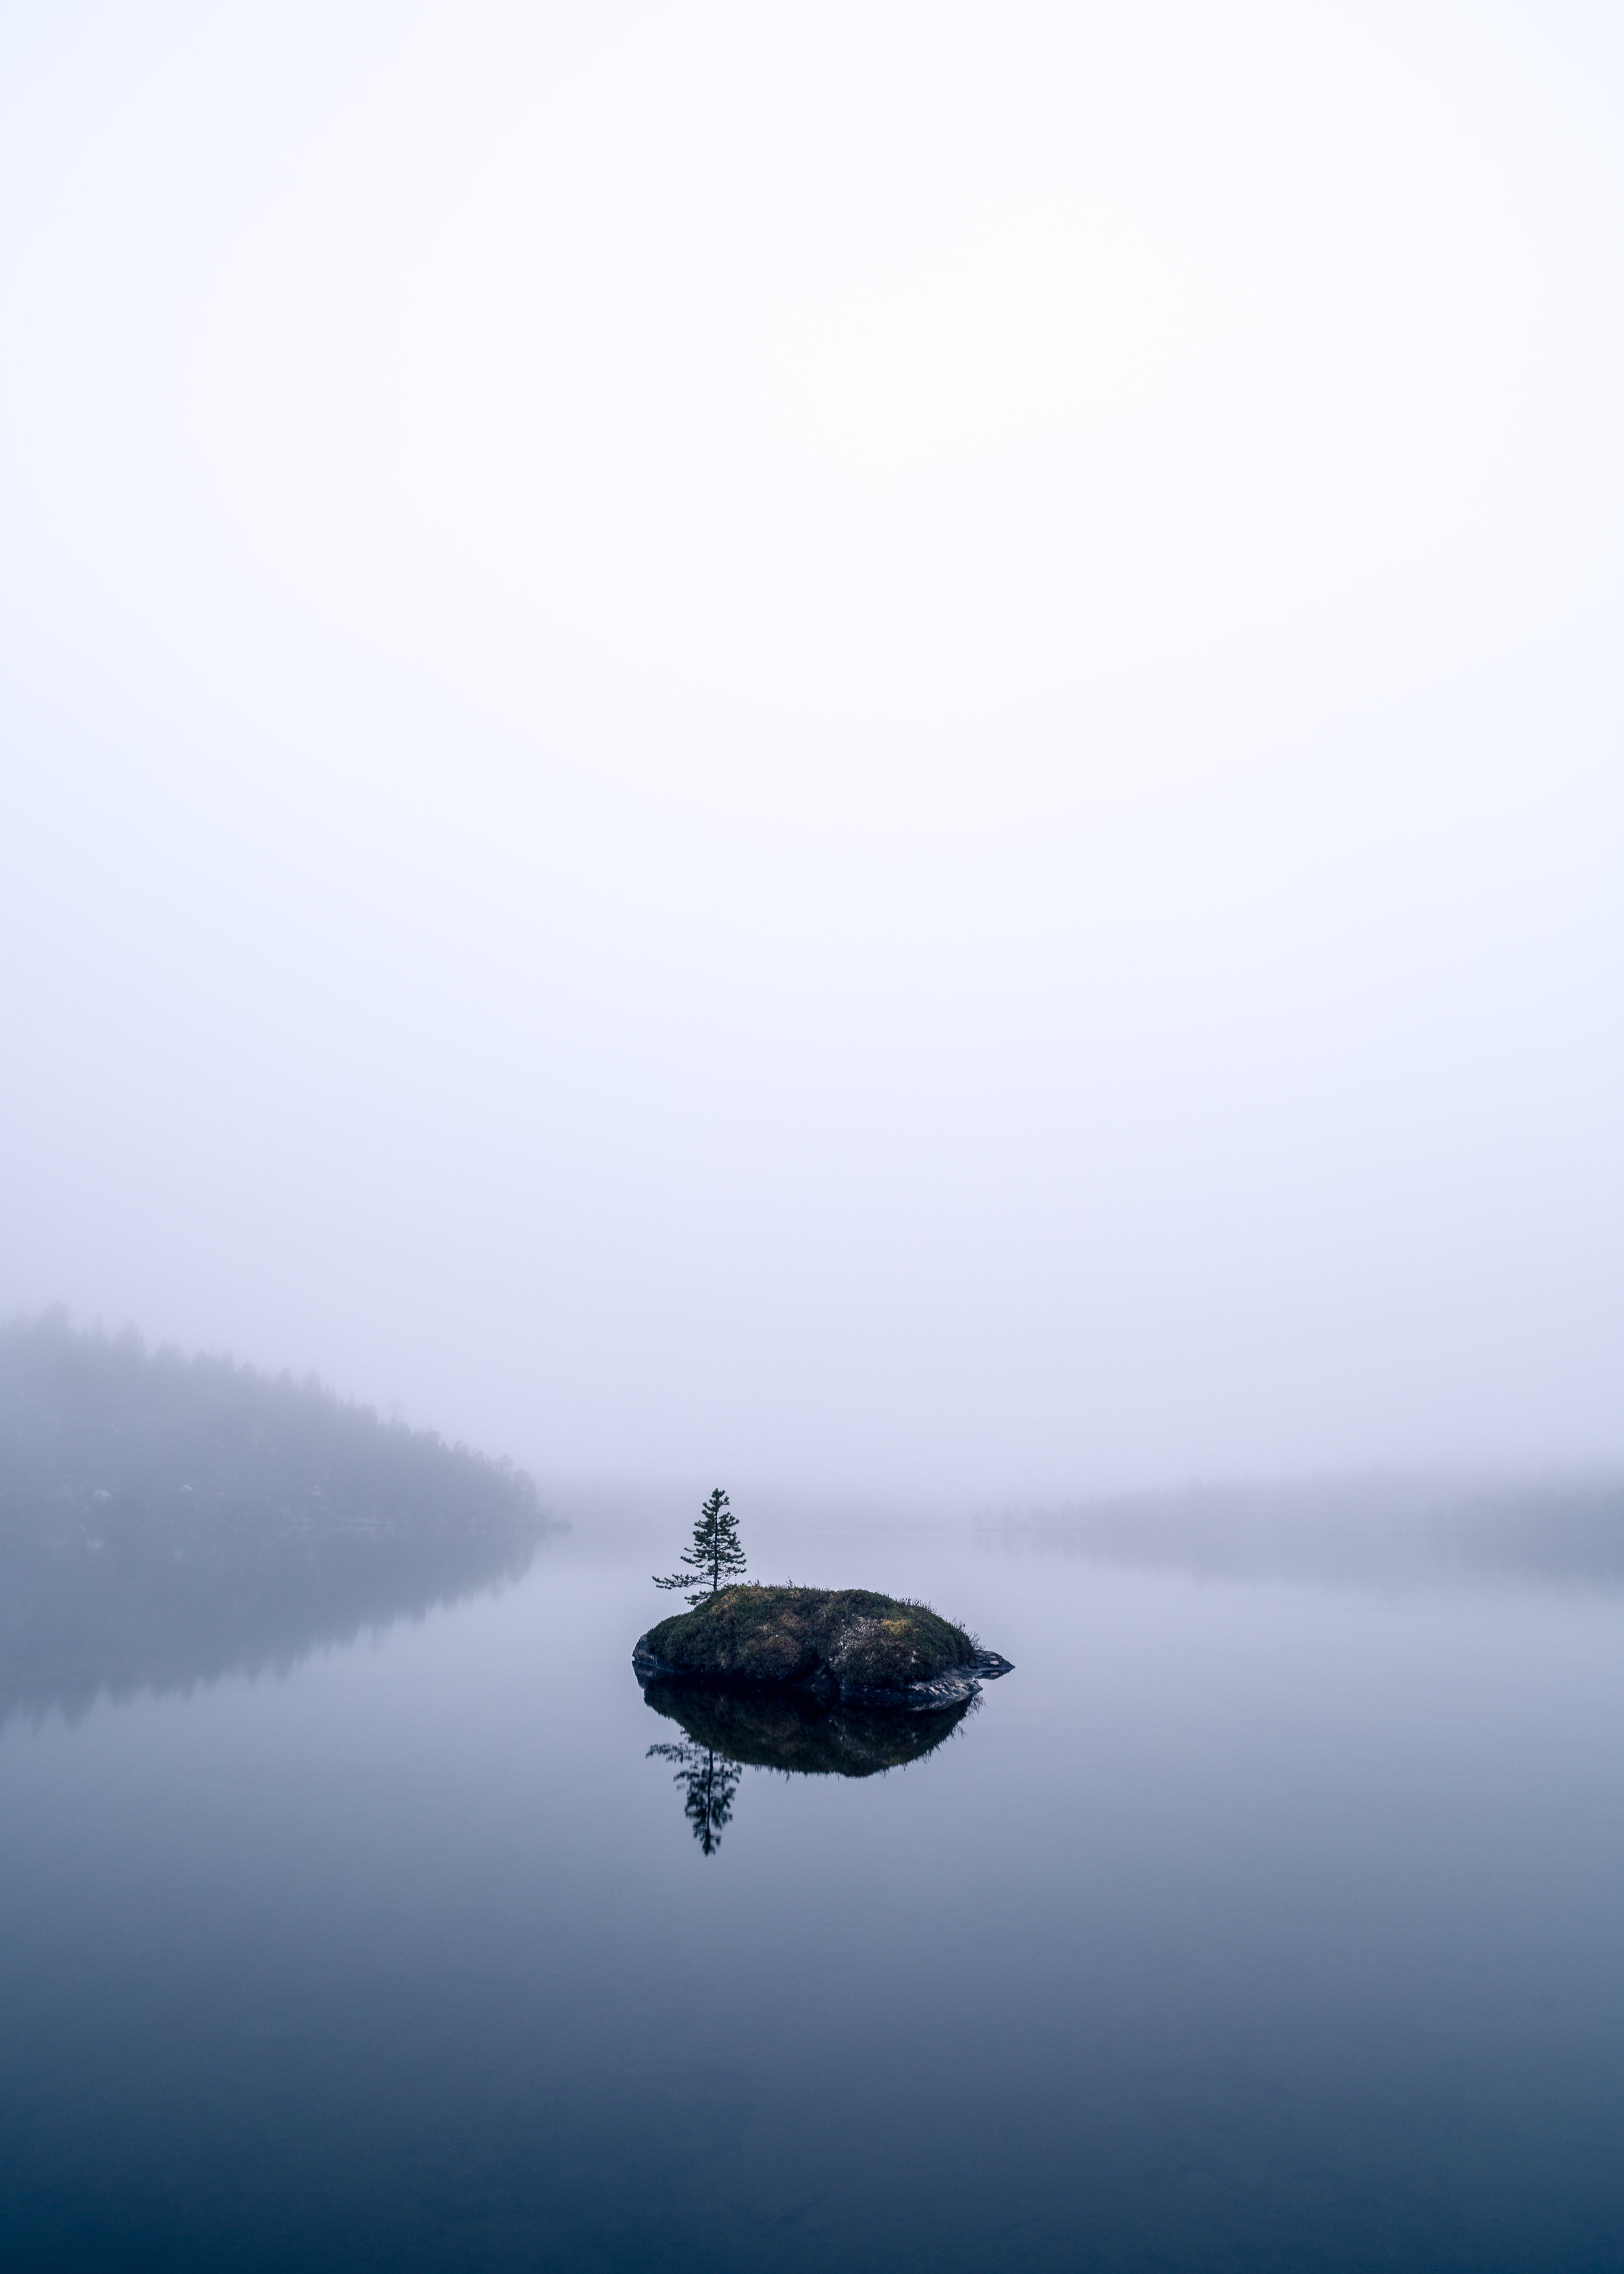 Solitude - A misty moment on one of the many beautiful lakes.